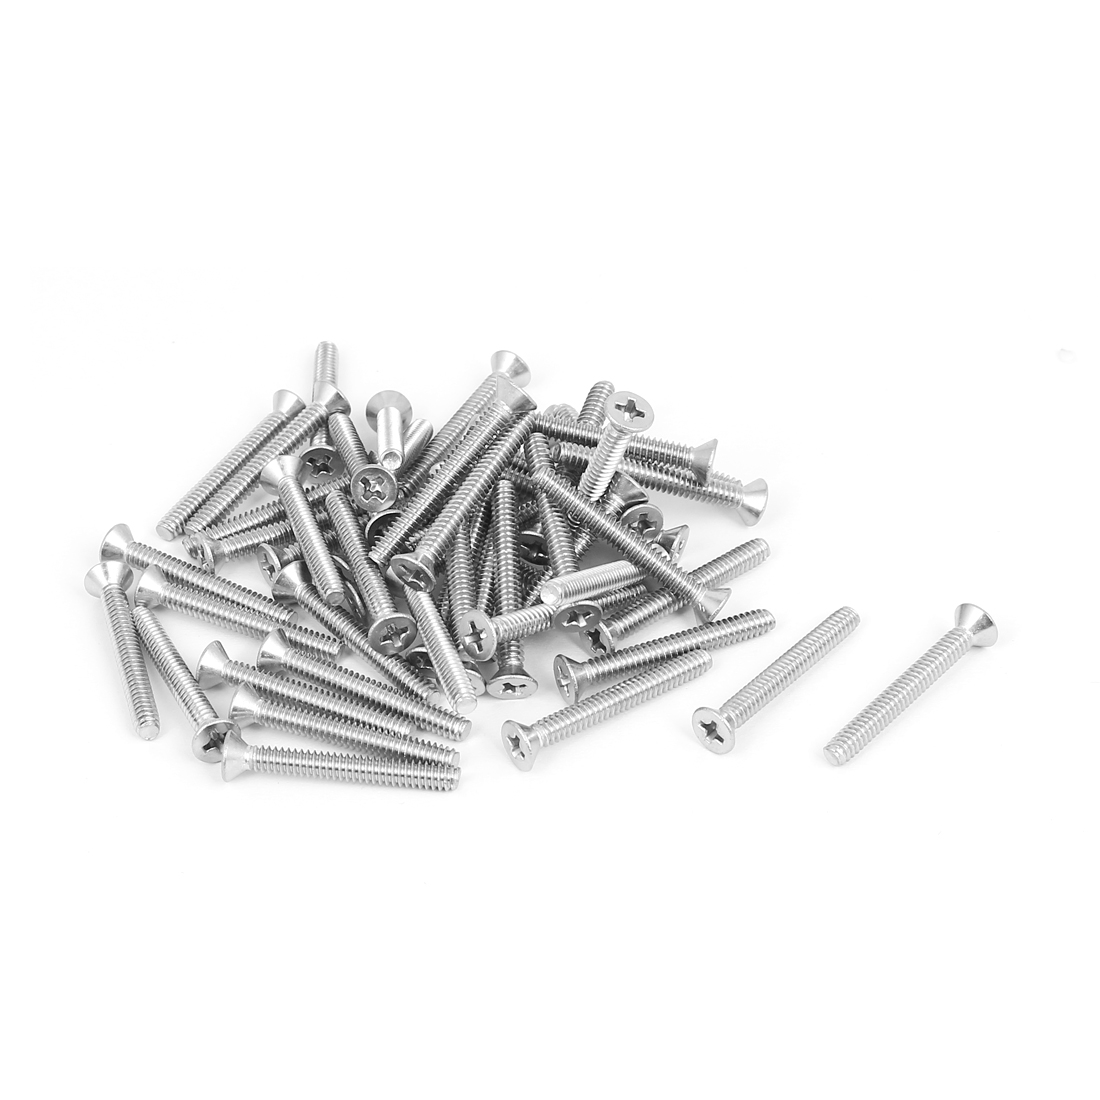 "6#-32x1-1/8"" 304 Stainless Steel Phillips Flat Countersunk Head Screws 50pcs"